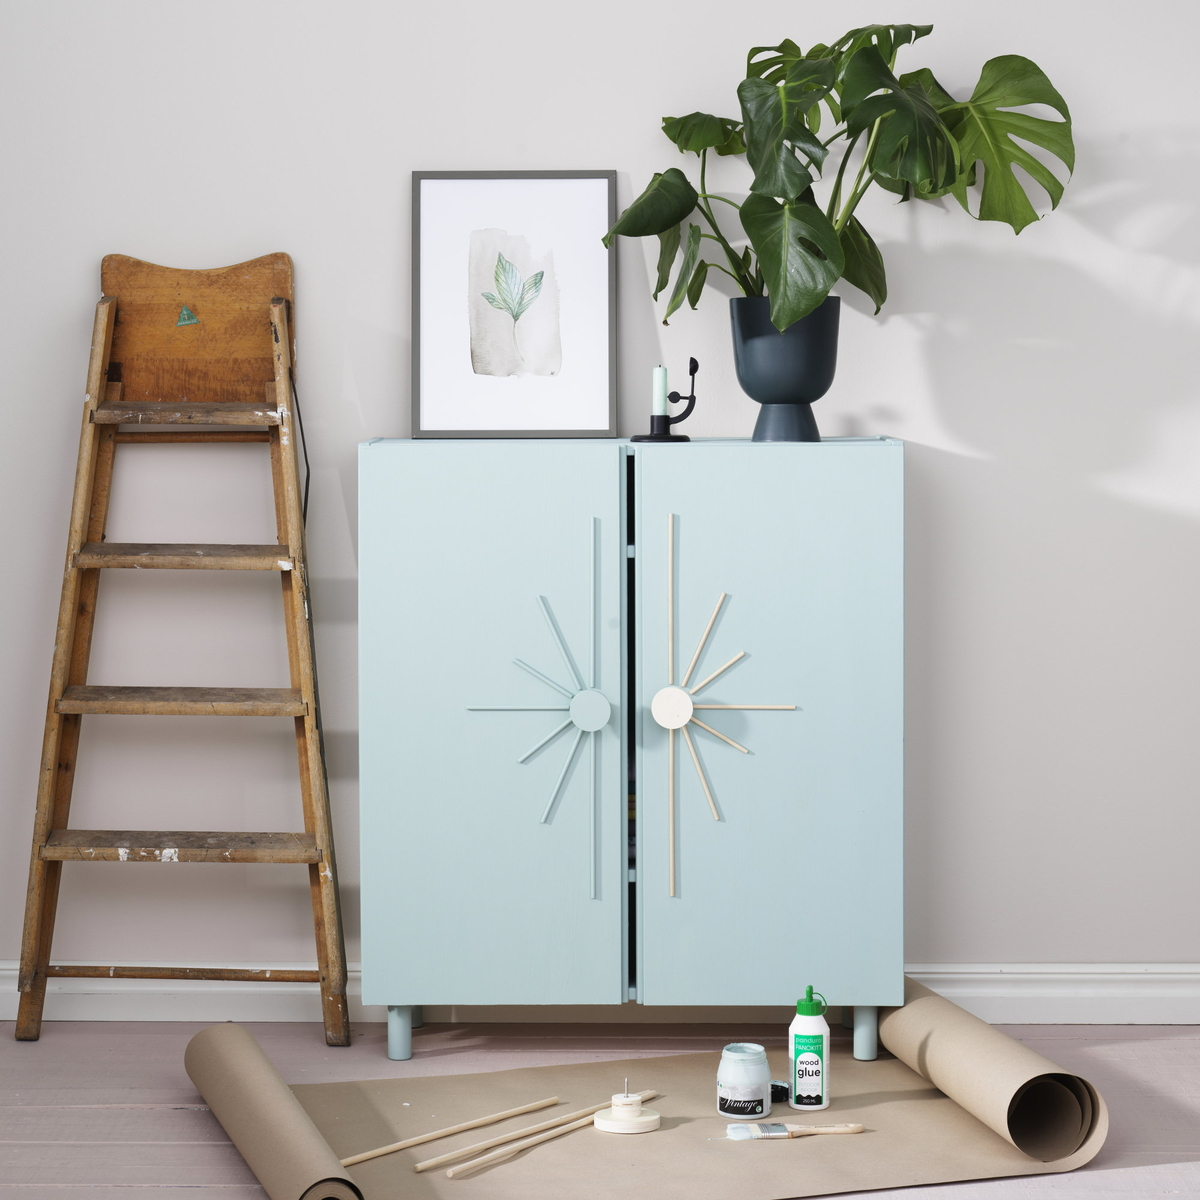 Renew furniture with paint